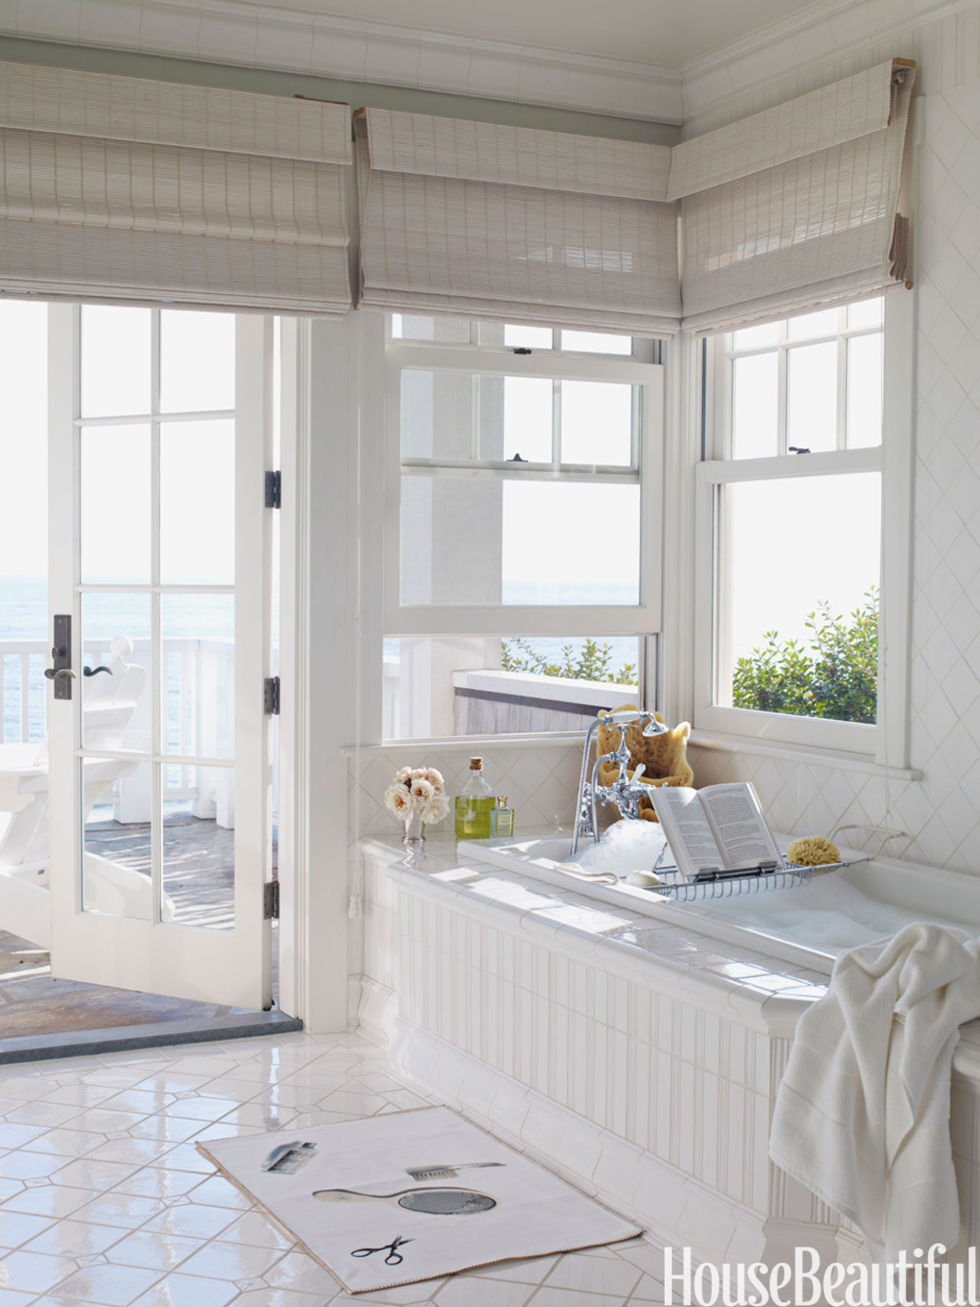 Small Bathrooms House Beautiful summer rooms - summer decorating ideas